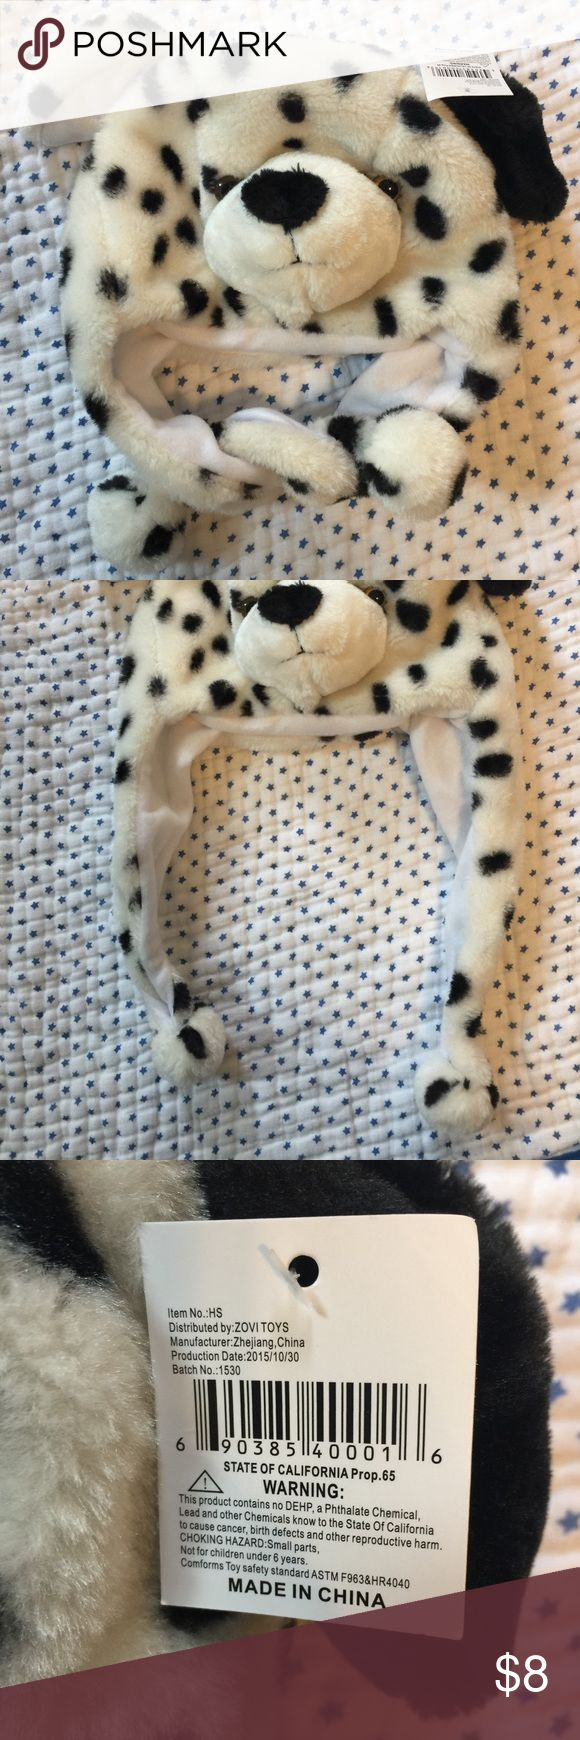 NWT NEW Dalmatian dog Costume Hat kids one sits Would be wonderful for Halloween, imaginative play, or even as a winter hat! New with tags, my son refuses to wear hats of any kind! Smoke free and pet free home. Zovi Toys Costumes Halloween